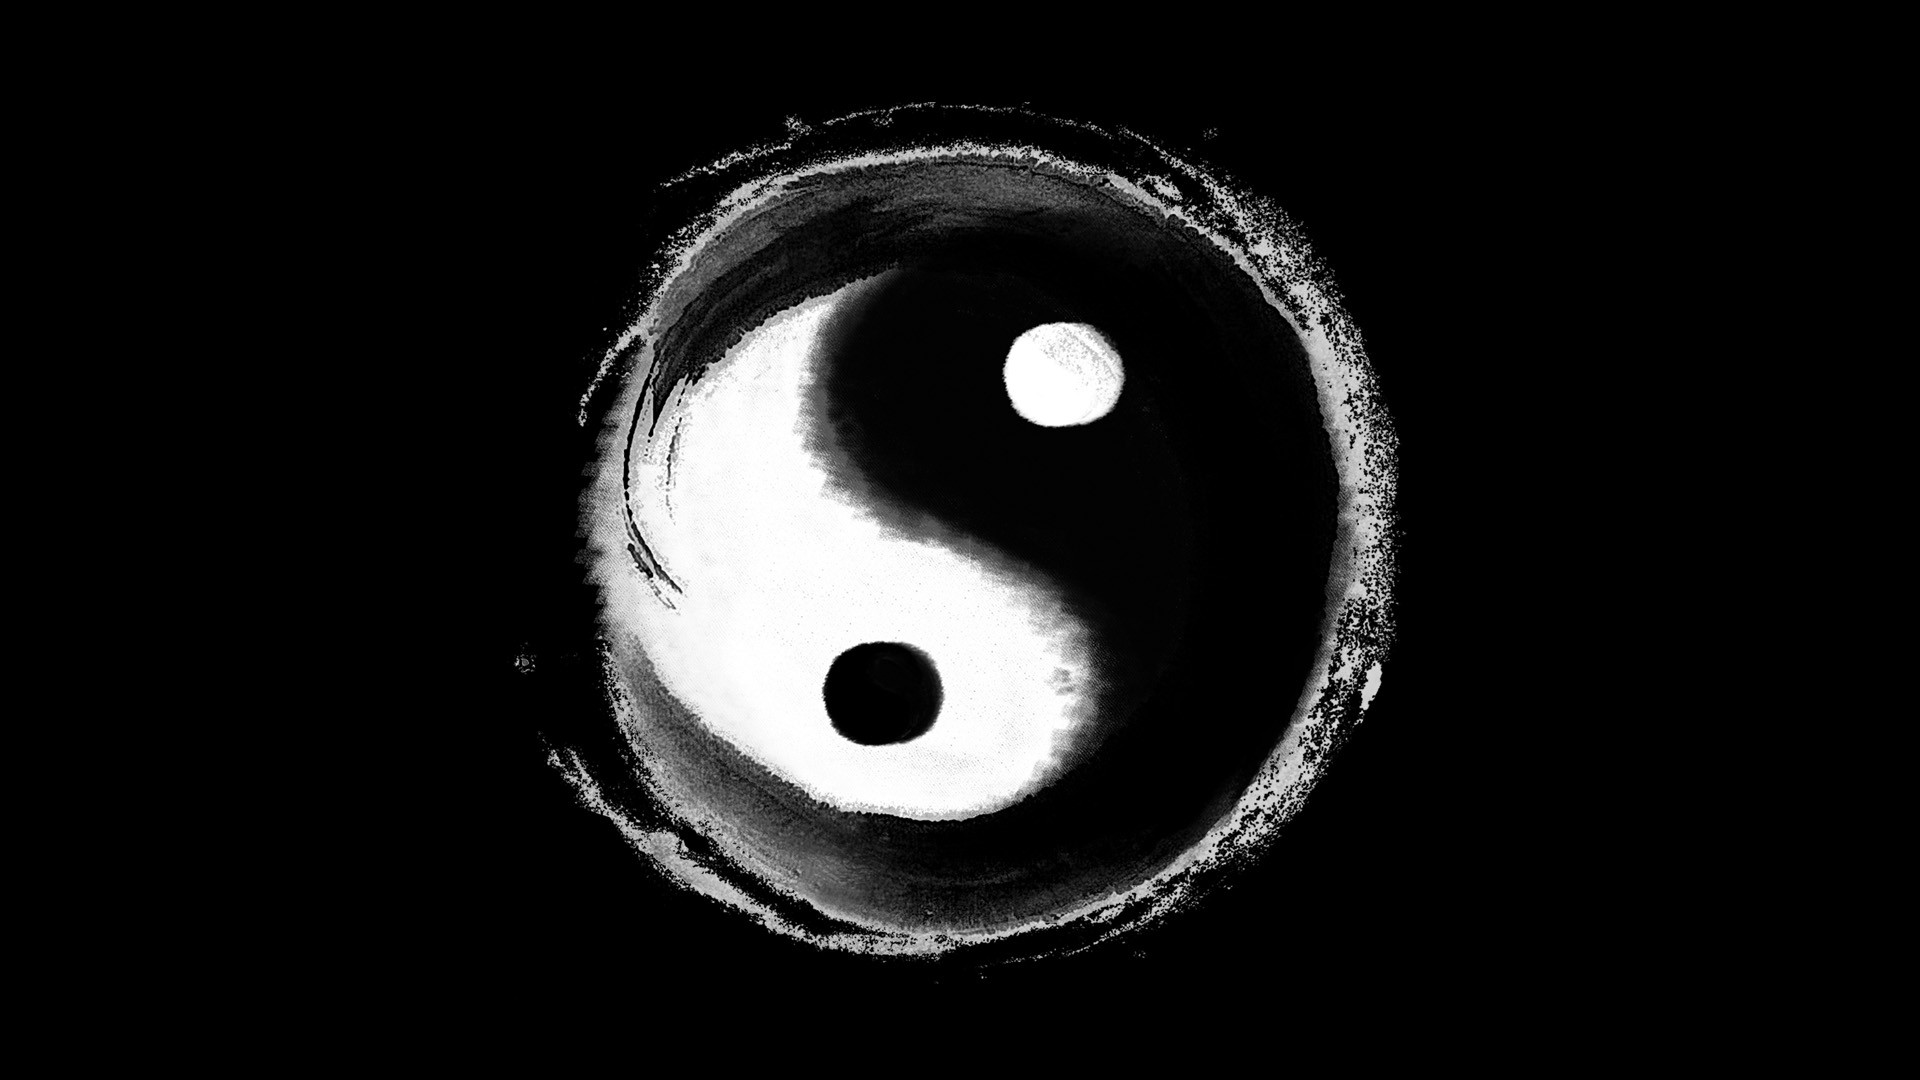 Ying-Yang-Backgrounds-048.jpg